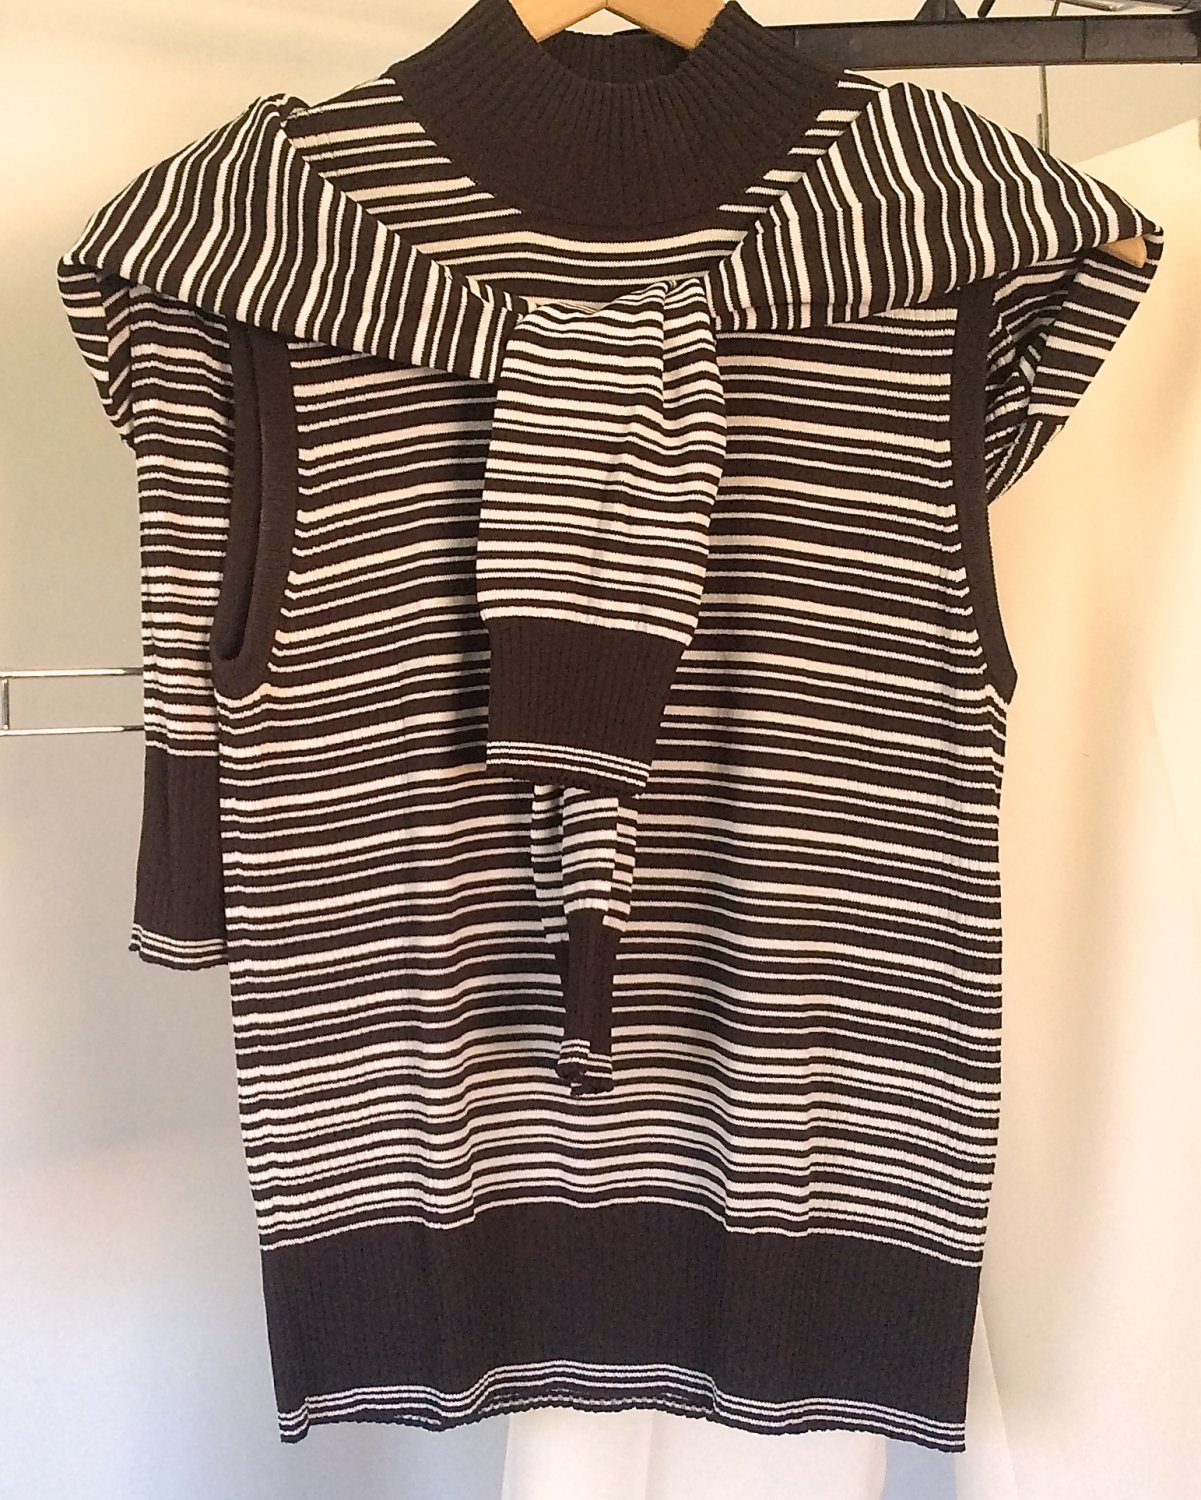 9fdff0b713d76d Anne Klein Top Matching Cardigan Knit Twin Set Sleeveless Mock Turtleneck  Office Outfit Separates